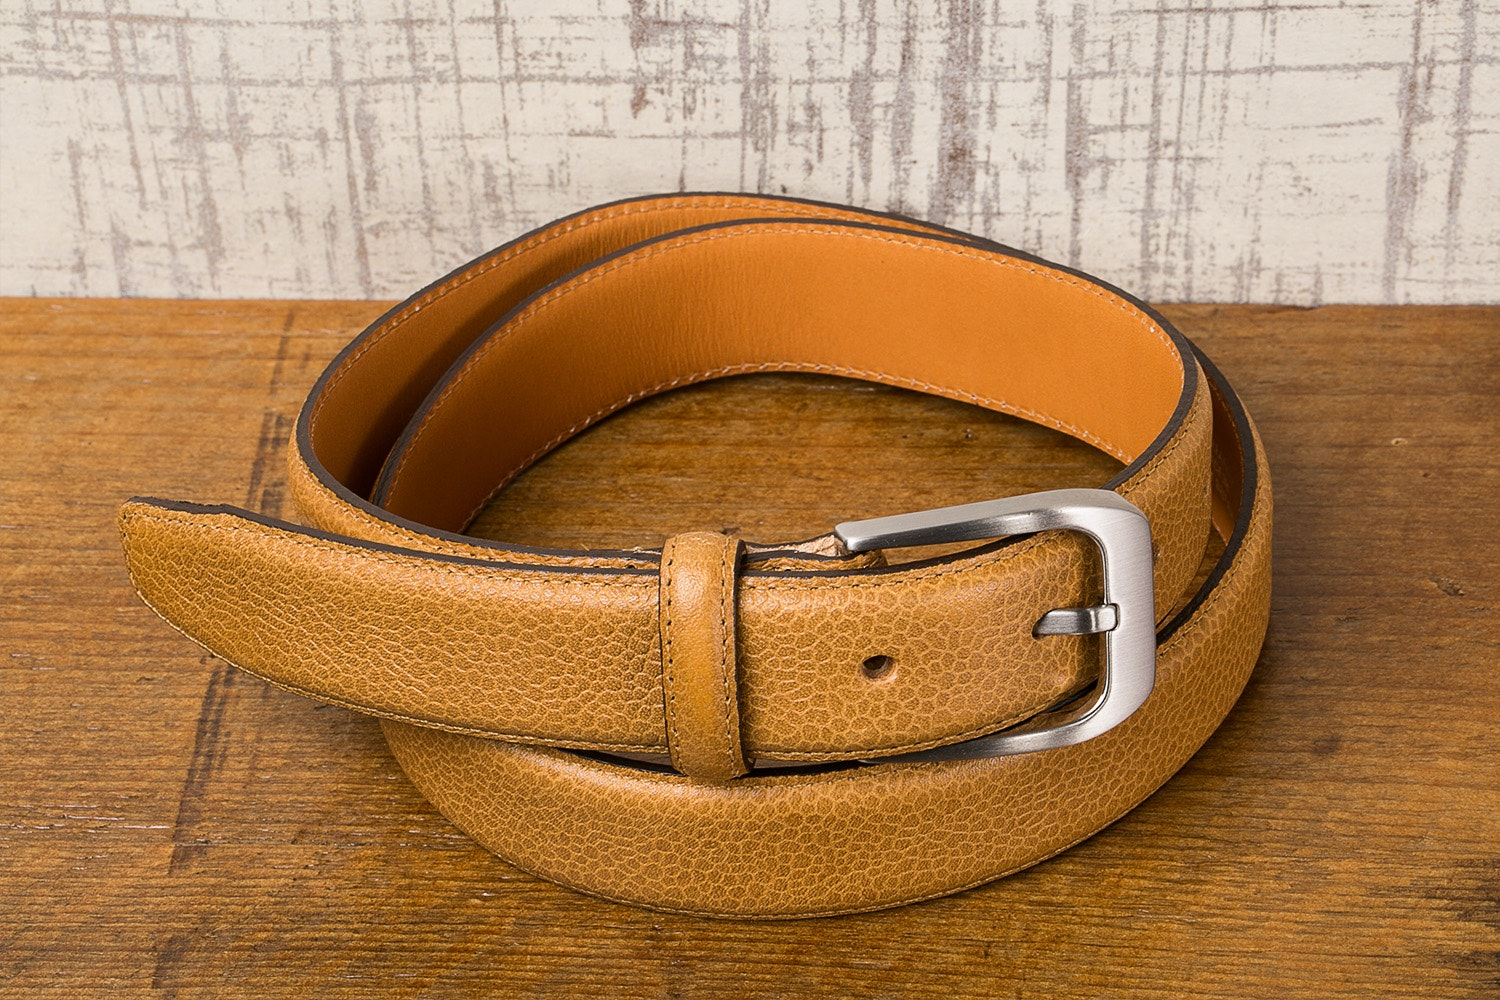 British Belt Co. Coberly Belt